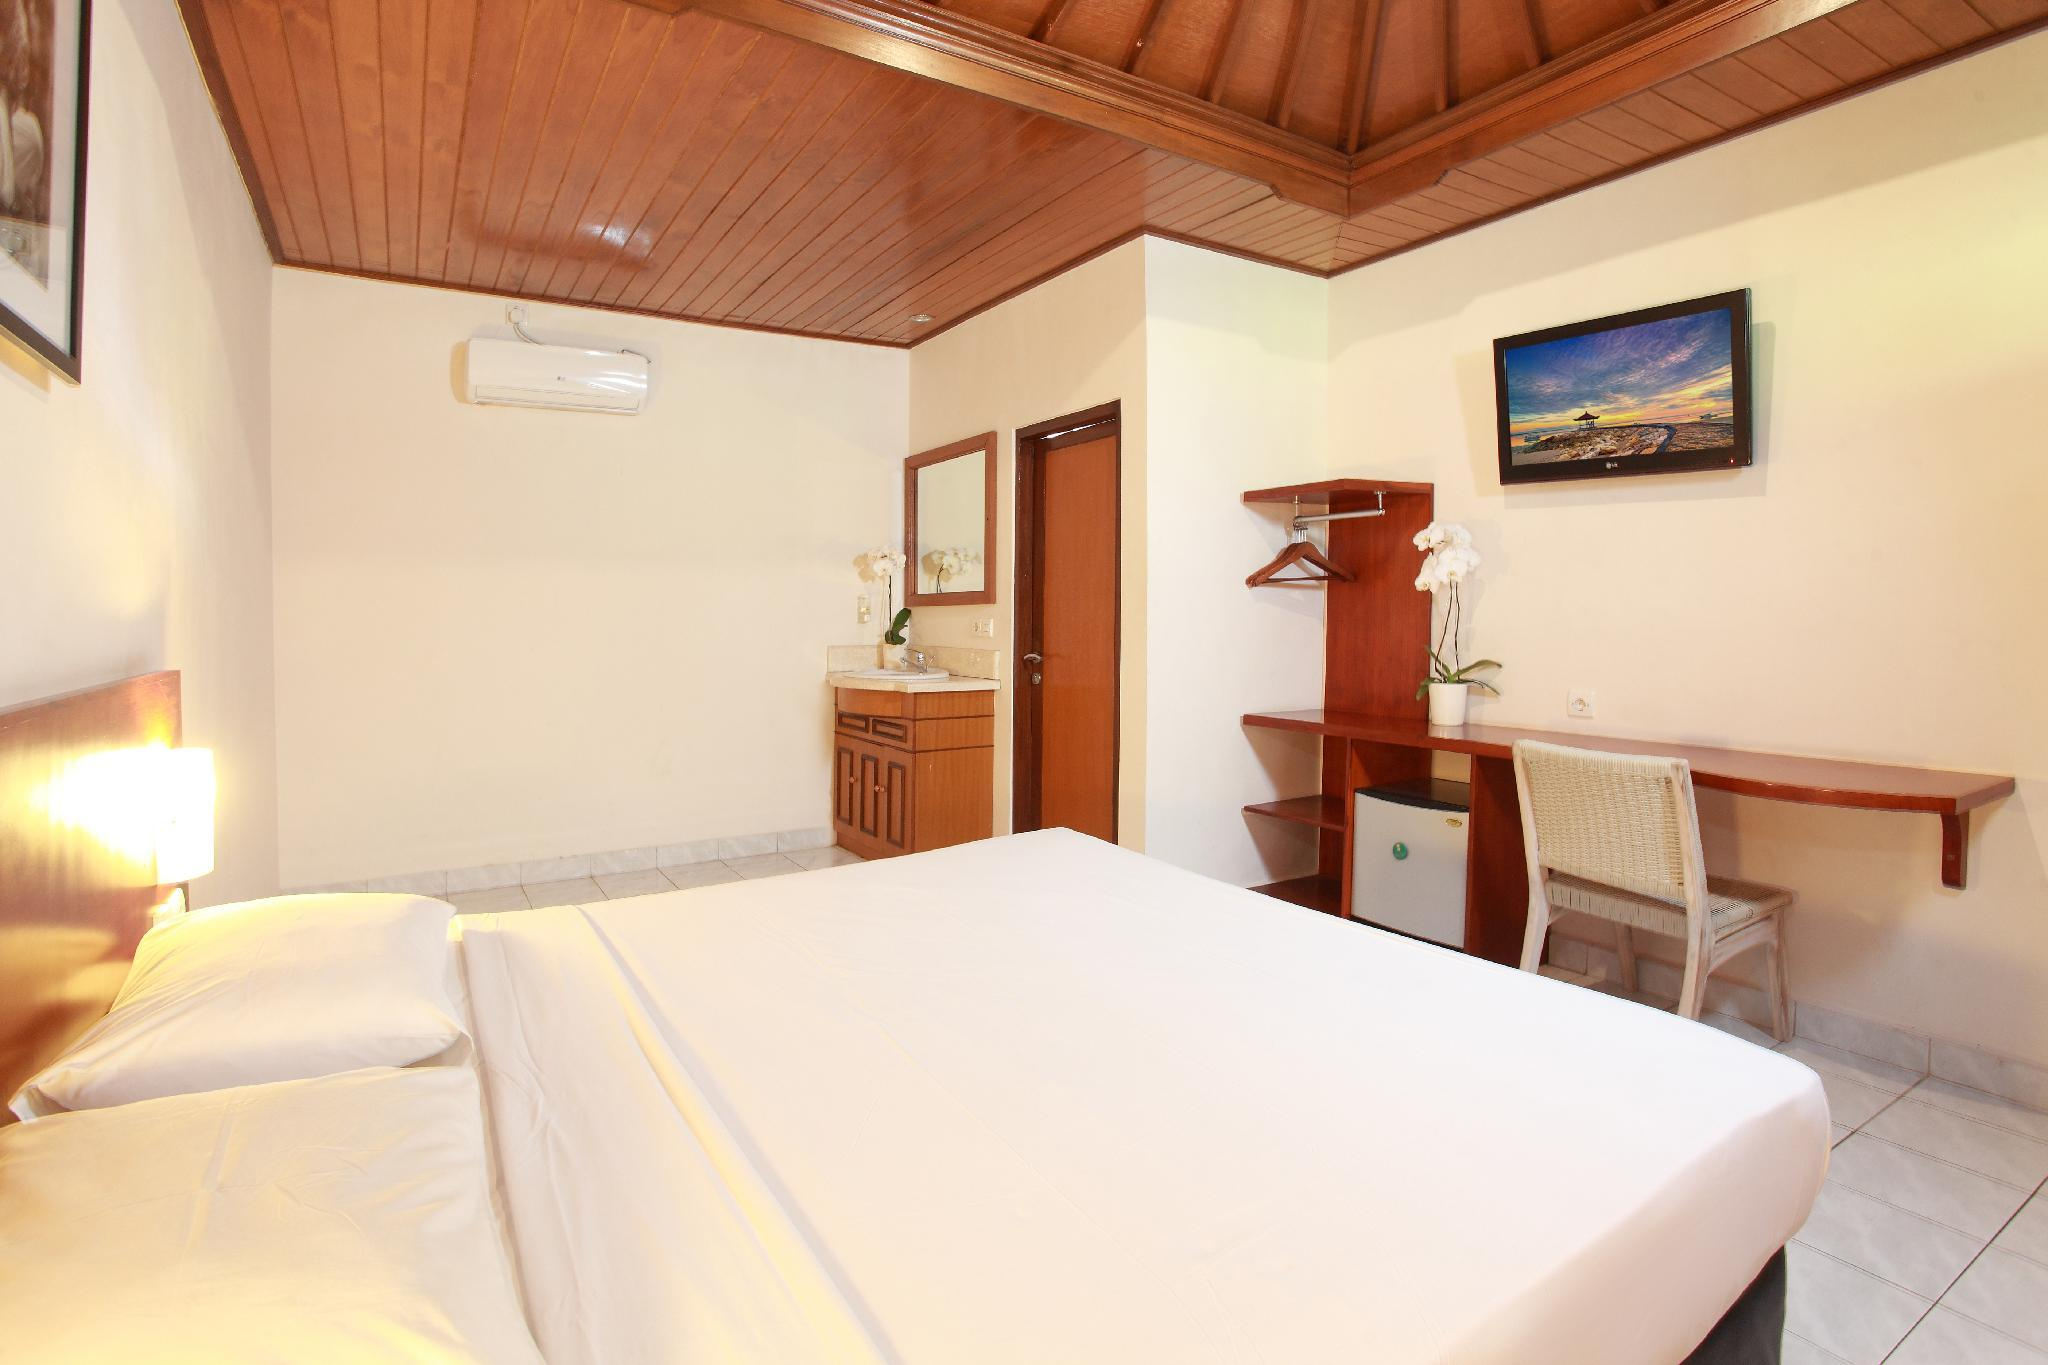 Oferta Especial - Habitació Doble o de 2 Llits (Special Offer - Double or Twin Room)